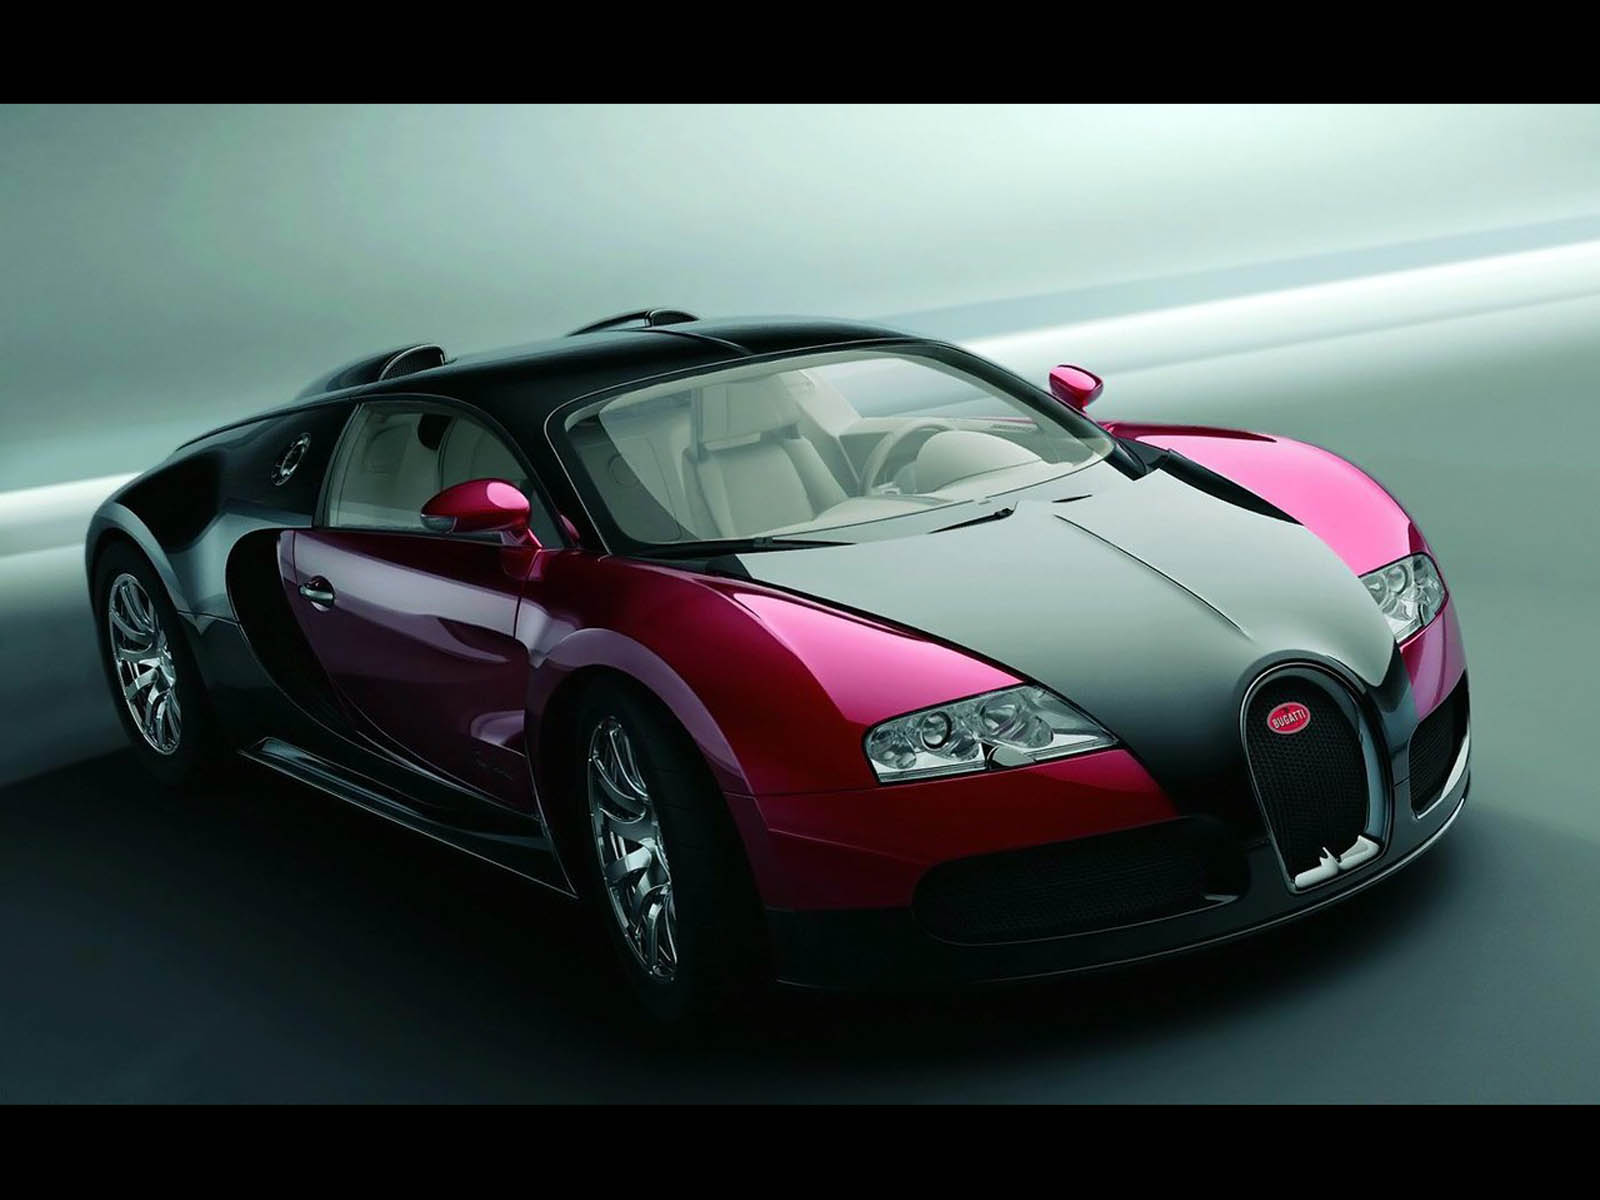 wallpaper bugatti veyron. Black Bedroom Furniture Sets. Home Design Ideas